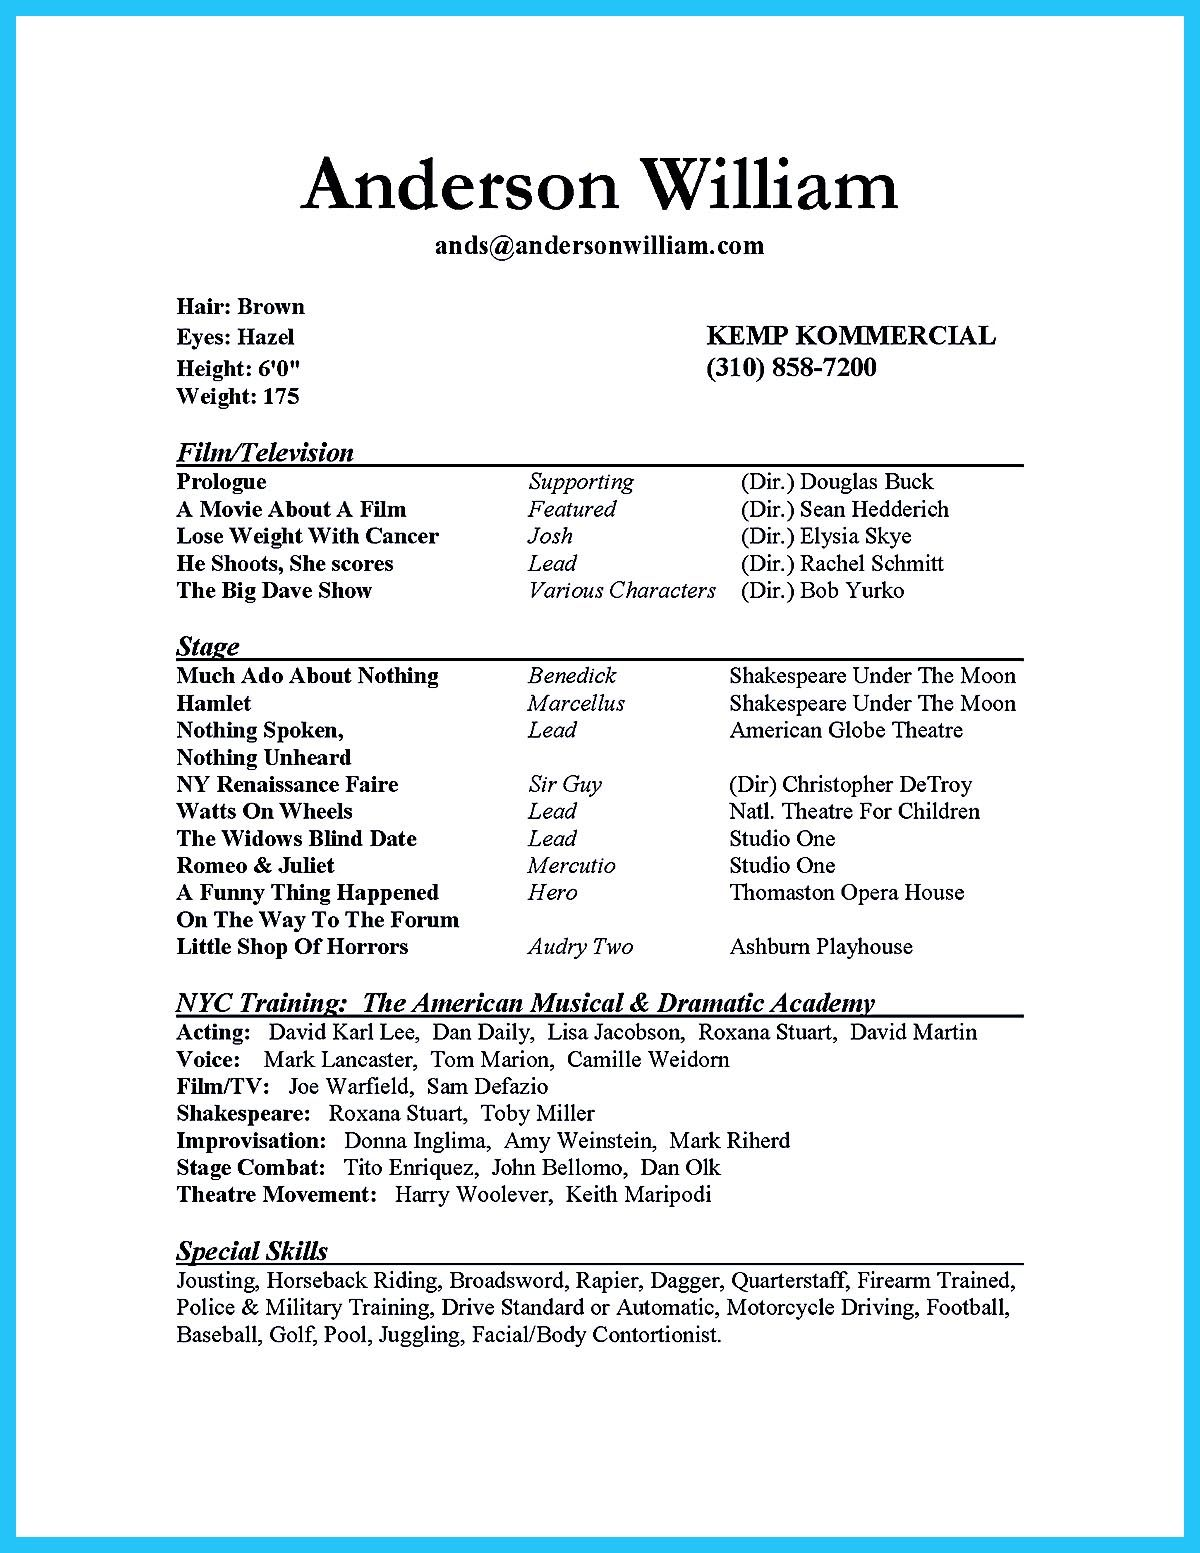 Actor Resume Format Interesting Actor Resume Sample Presents How You Will Make Your Professional Or .